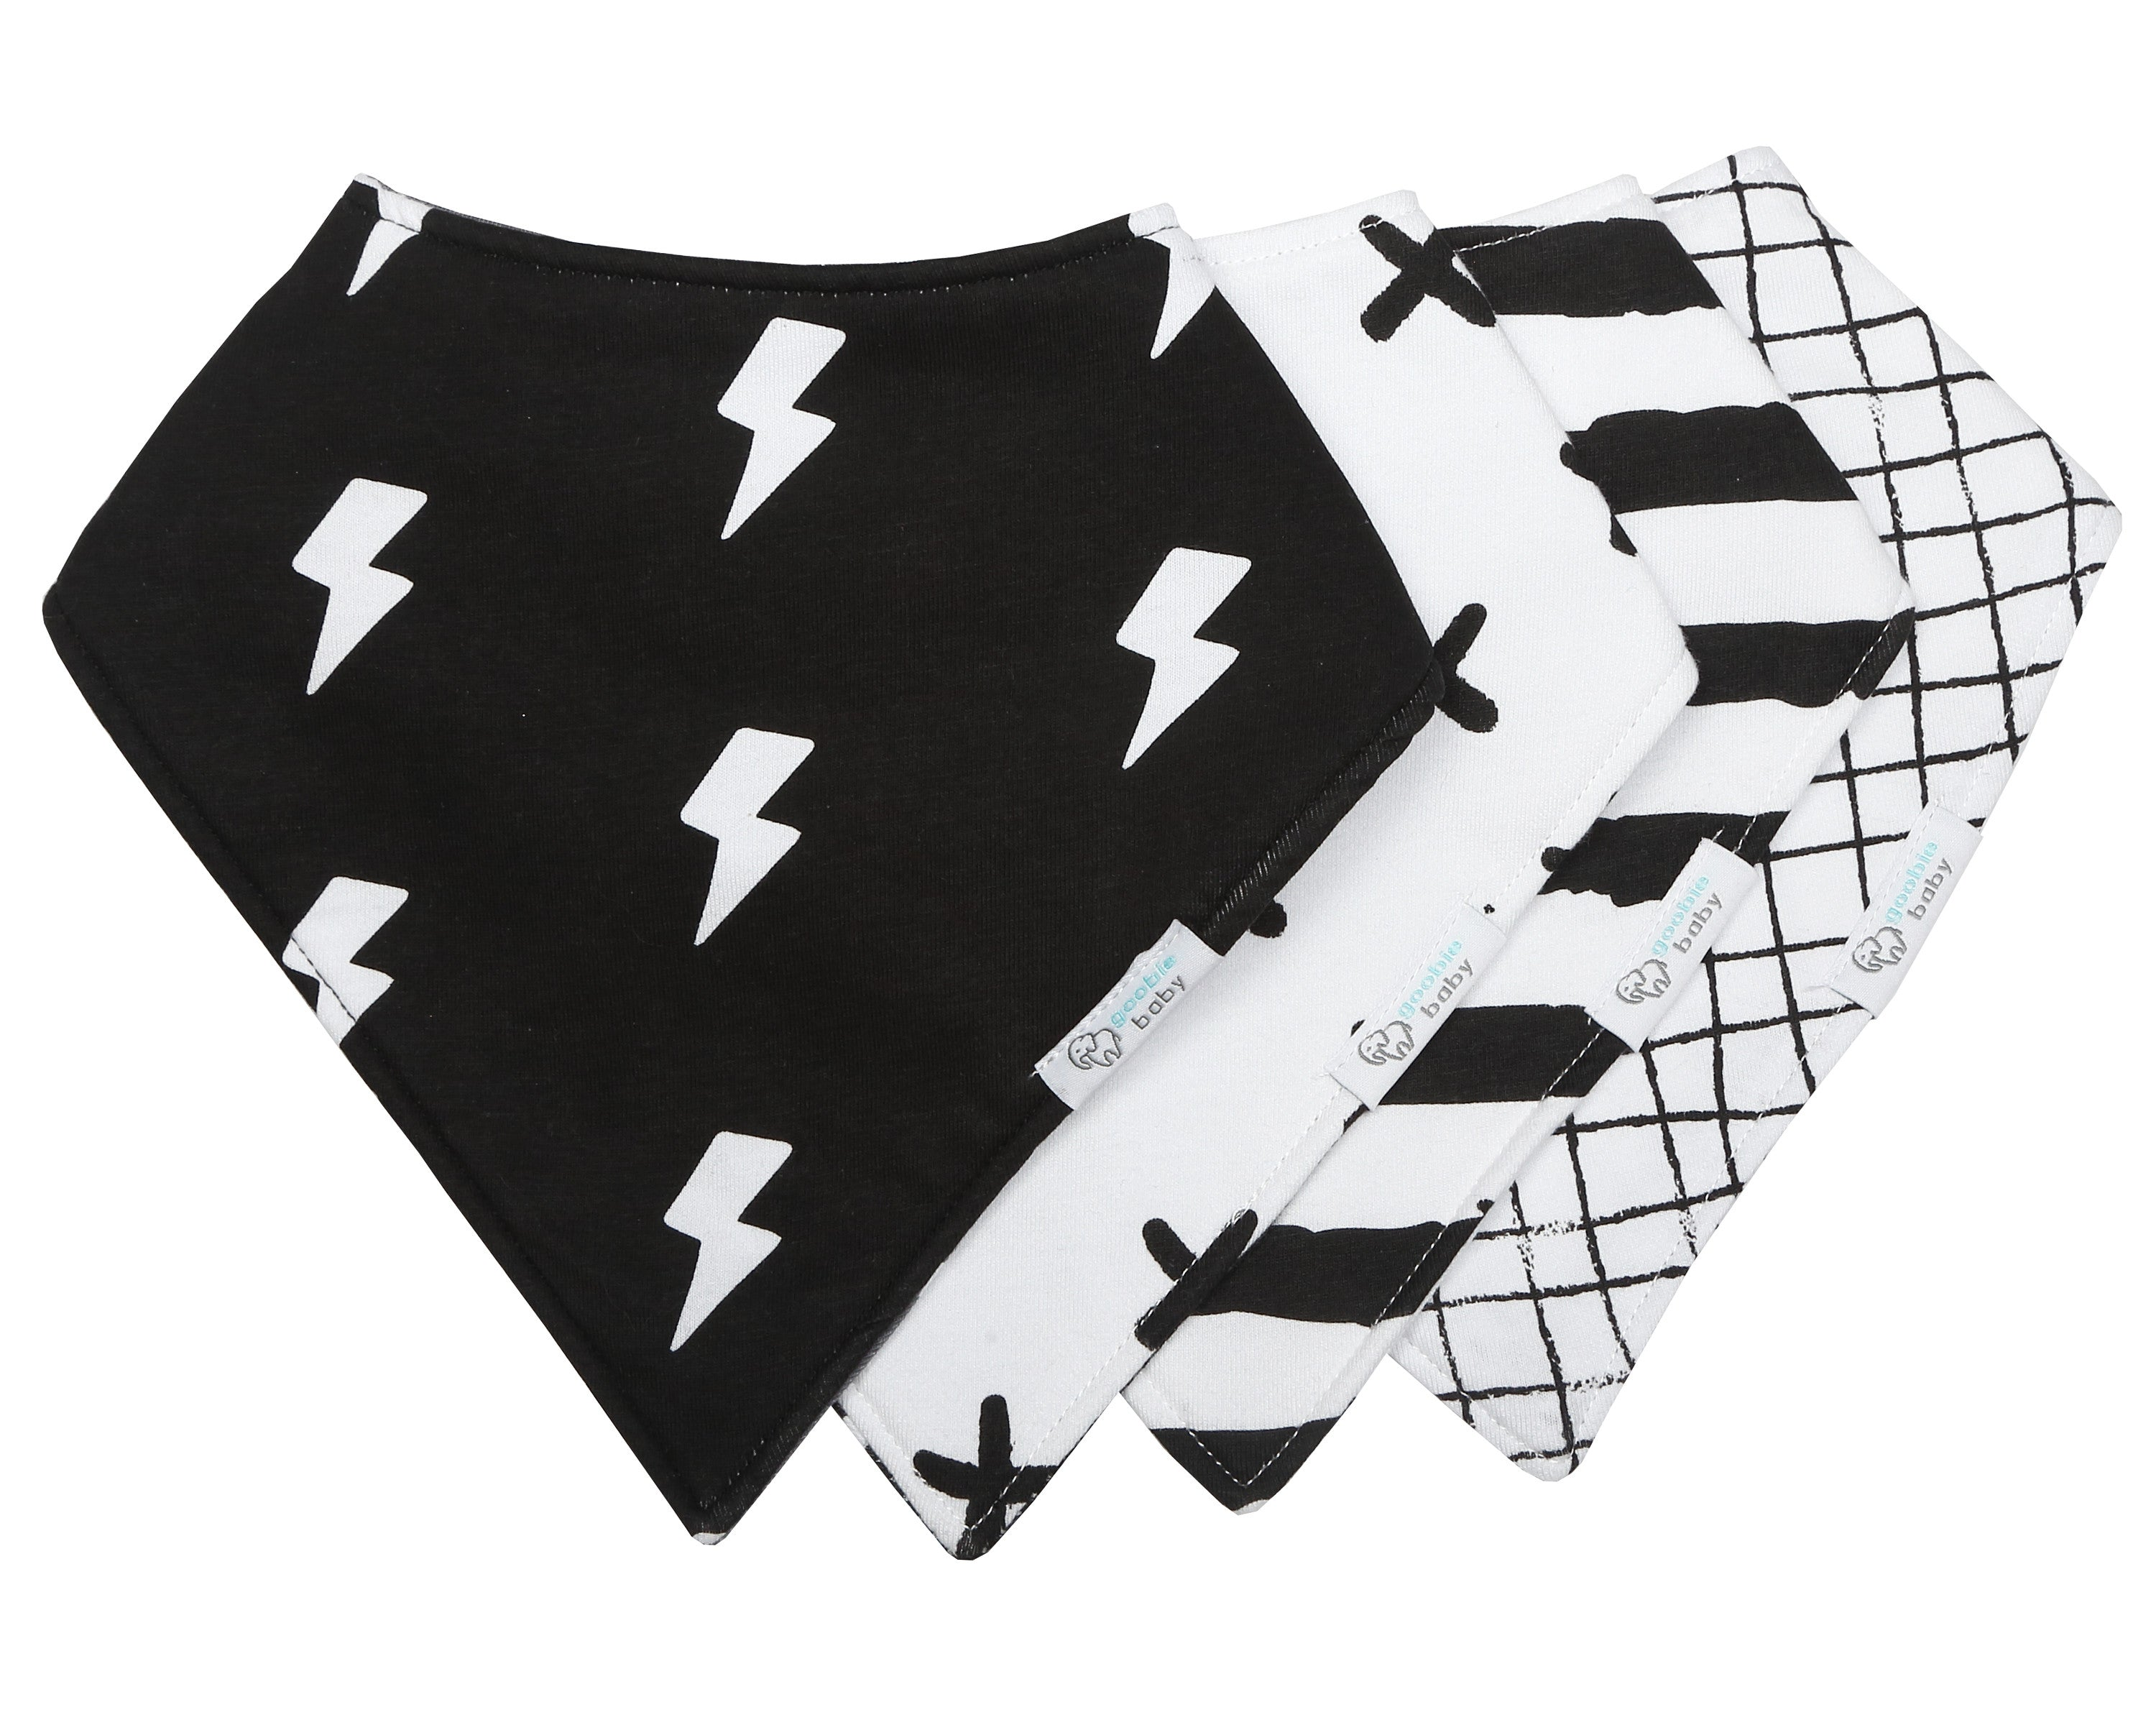 Reversible & Waterproof Cotton Baby Bandana Drool Bibs - Black/White Monochrome